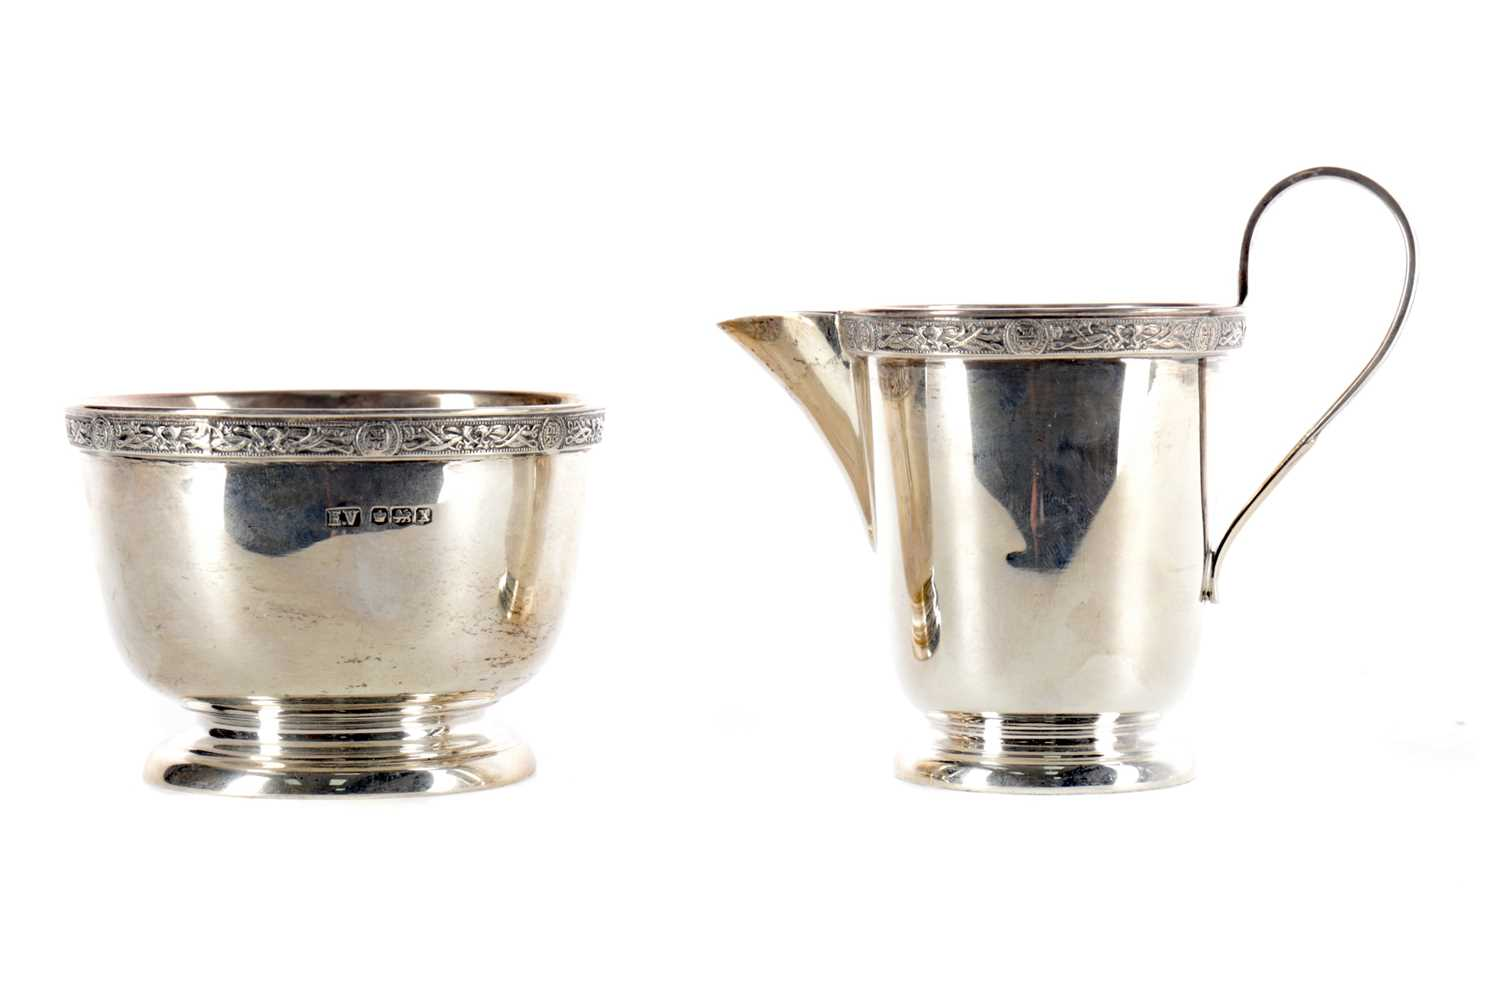 Lot 412 - A SILVER JUG AND BOWL BY EMILE VINER